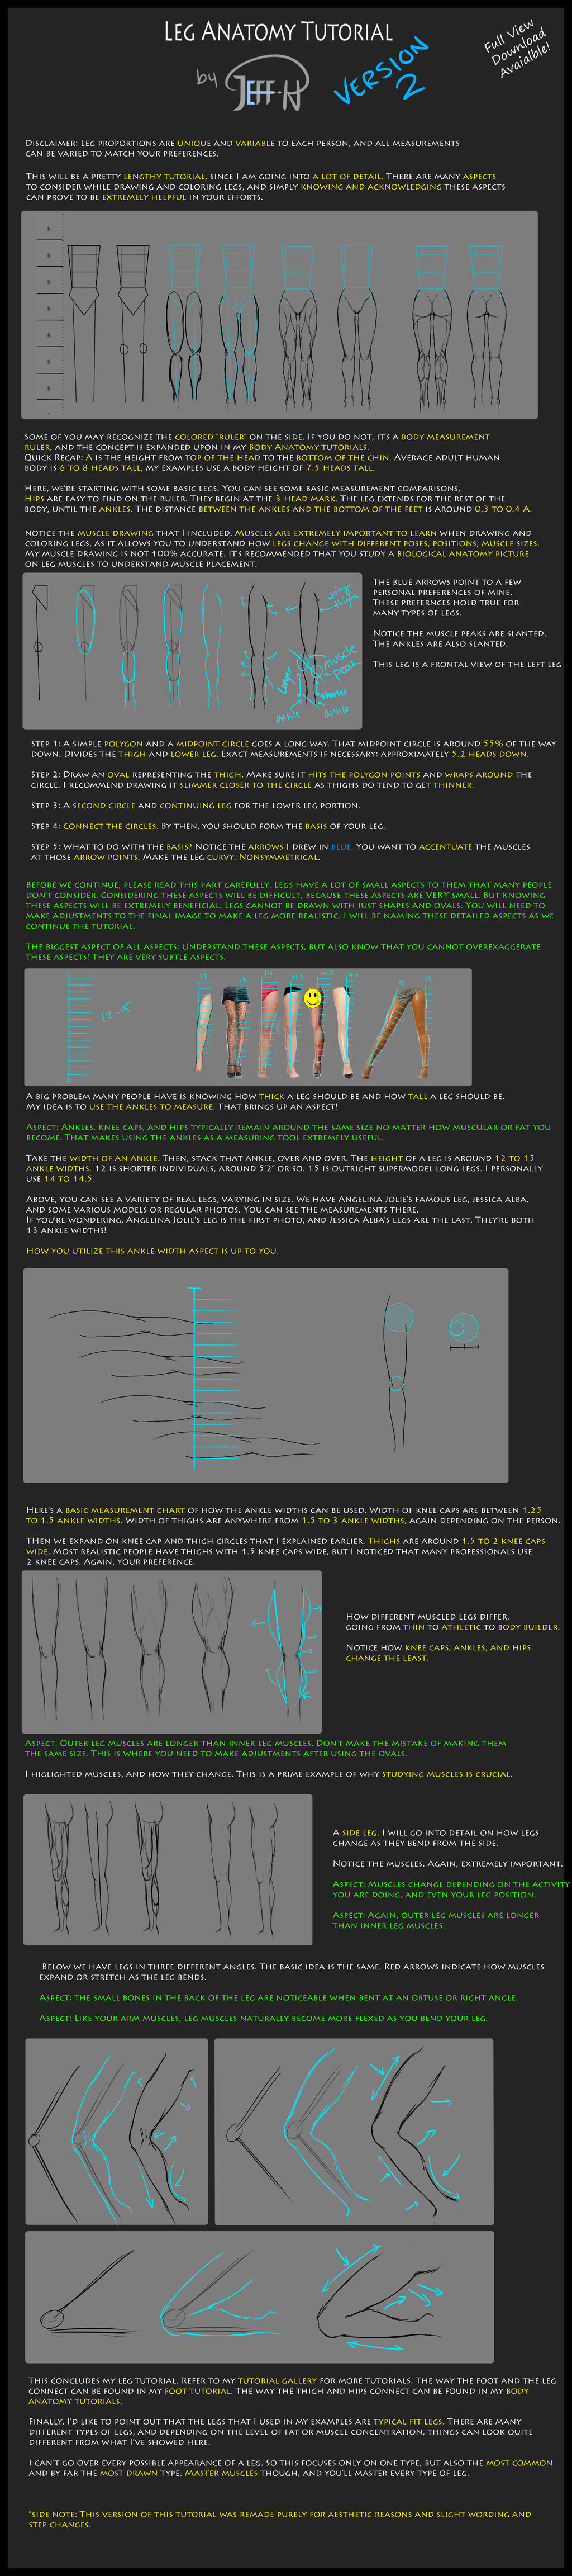 Leg Anatomy Tutorial (Version 2) by Jeff-H